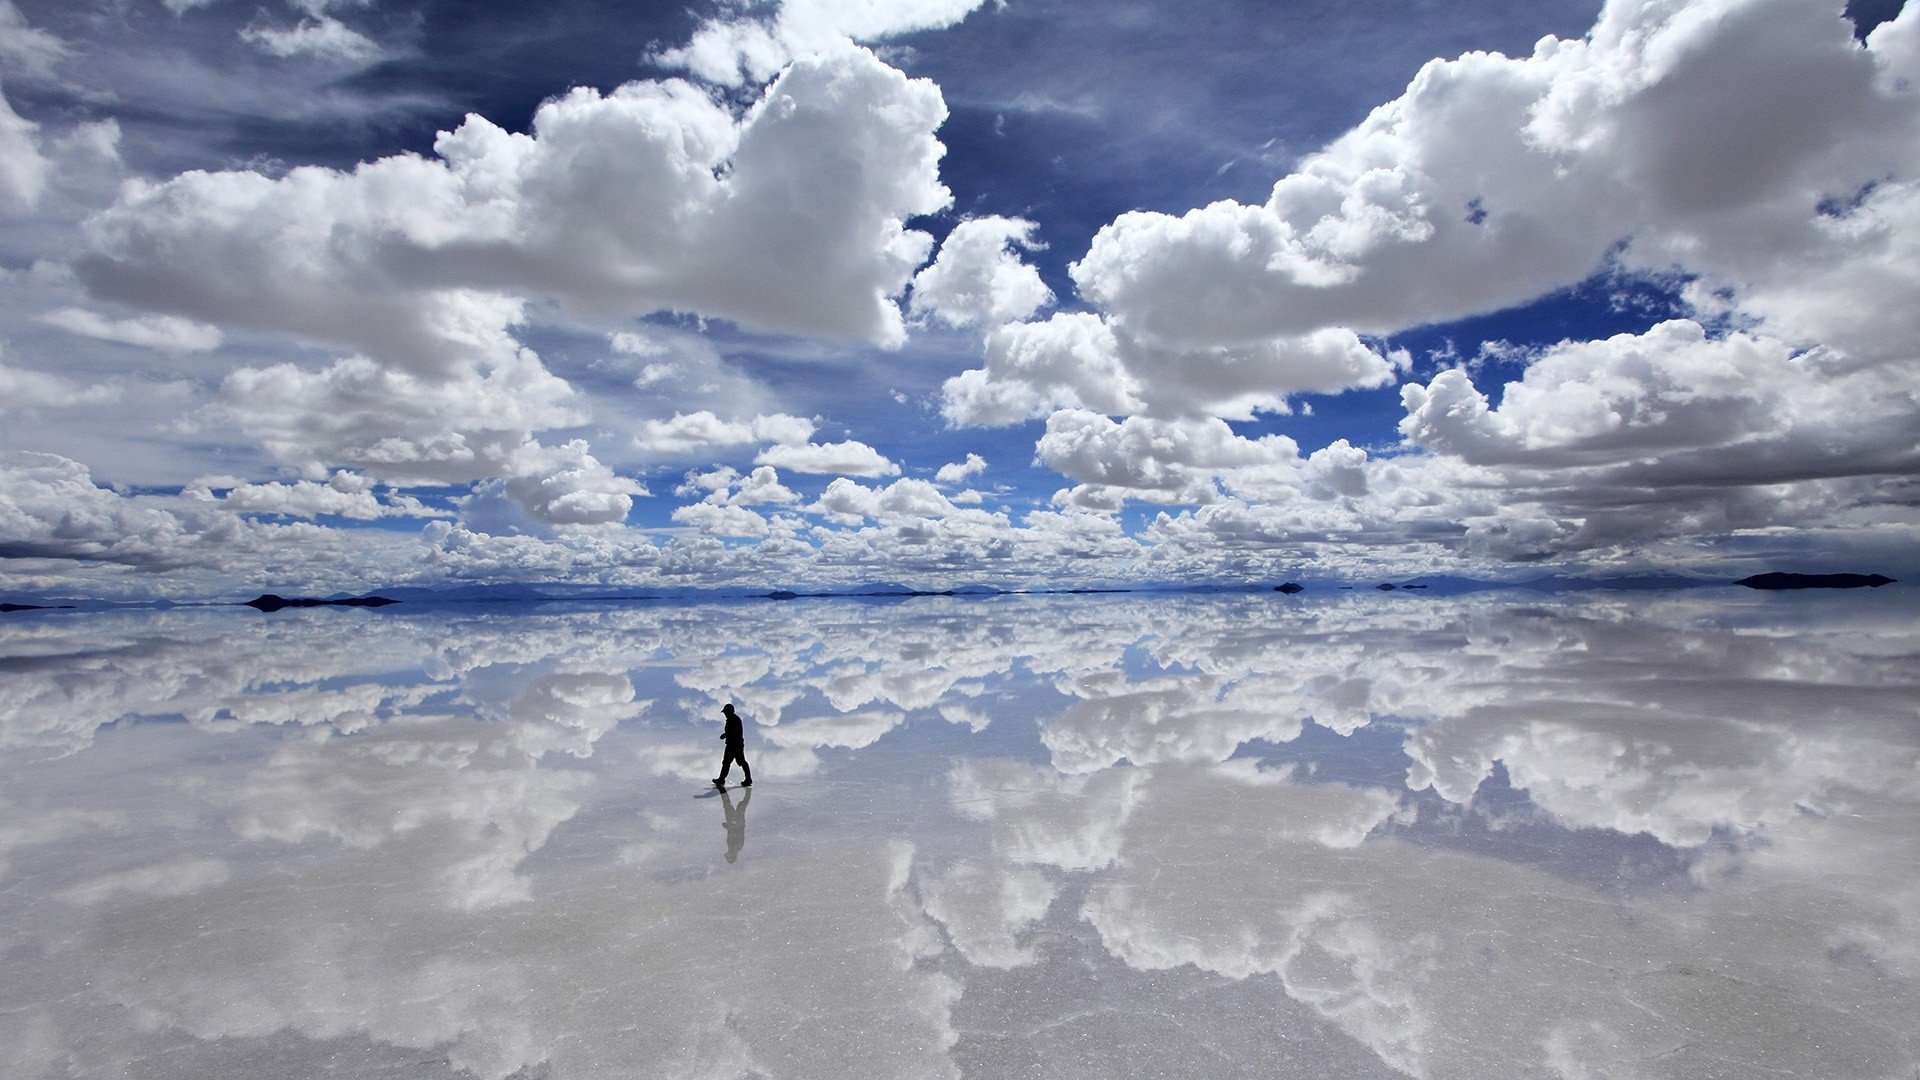 Photography - Reflection  Ocean Sea Beach Manipulation People Alone Scenic Sky Cloud Mood Wallpaper